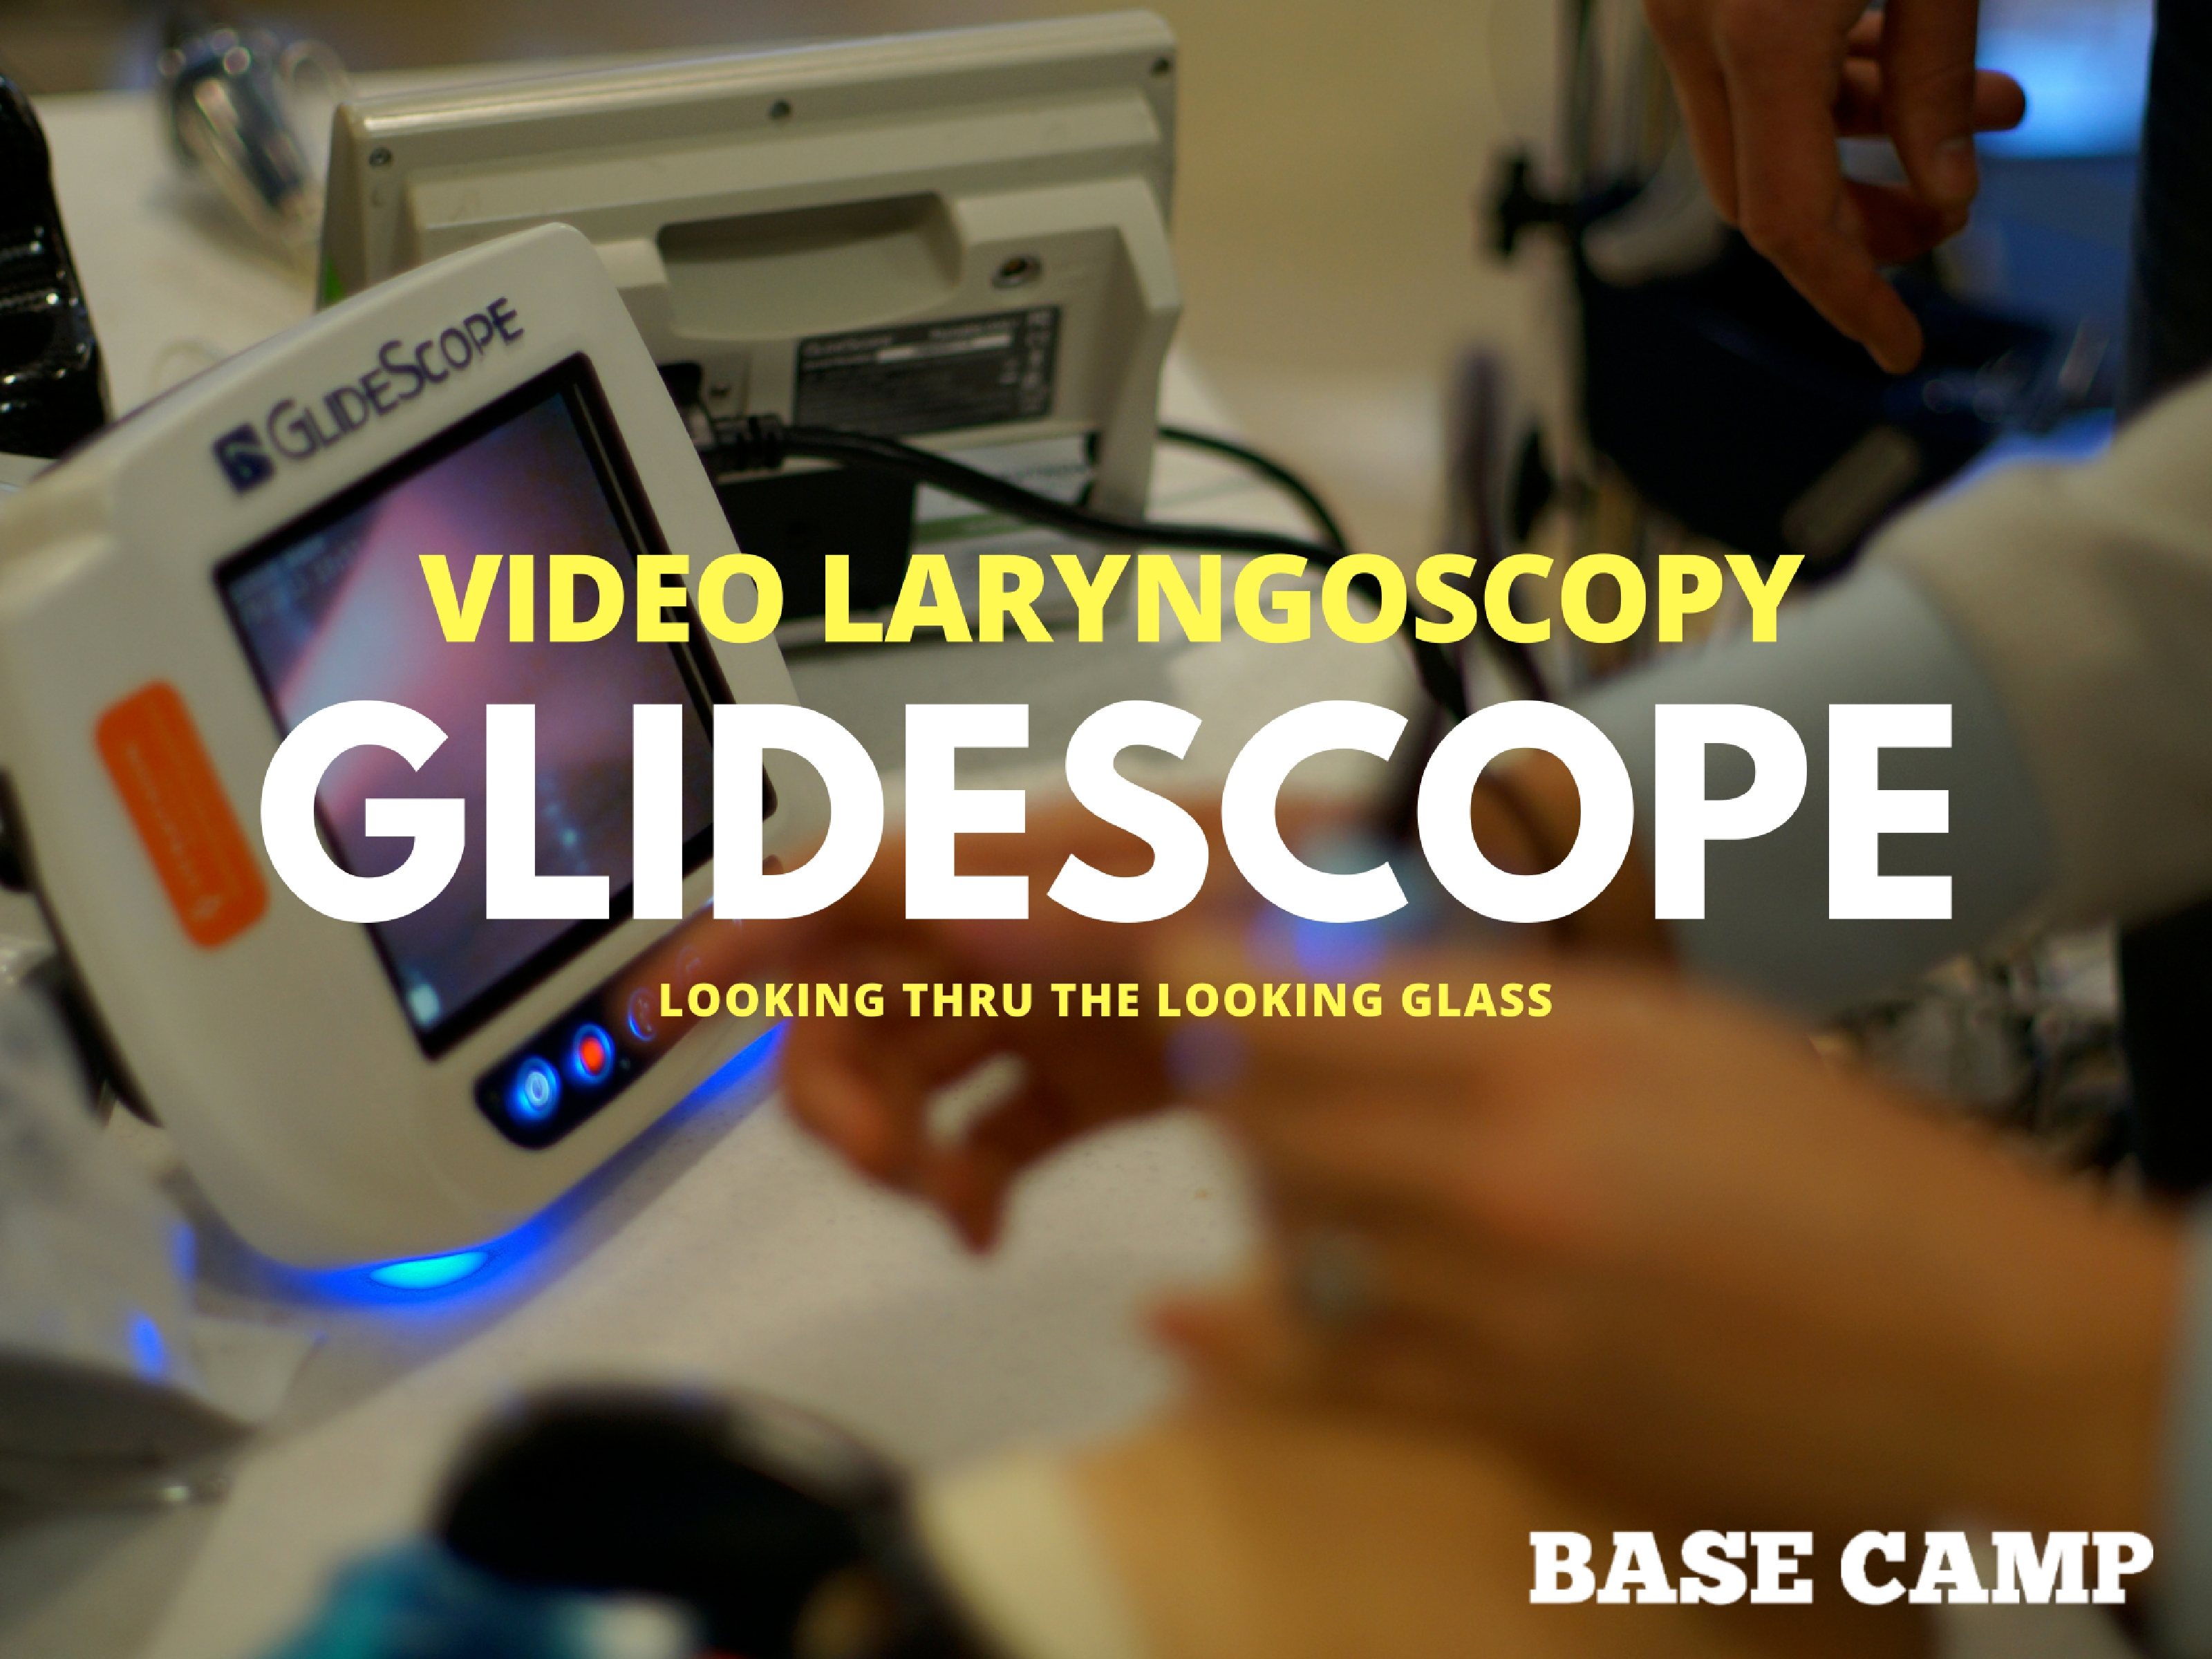 GlideScope Video Laryngoscopy